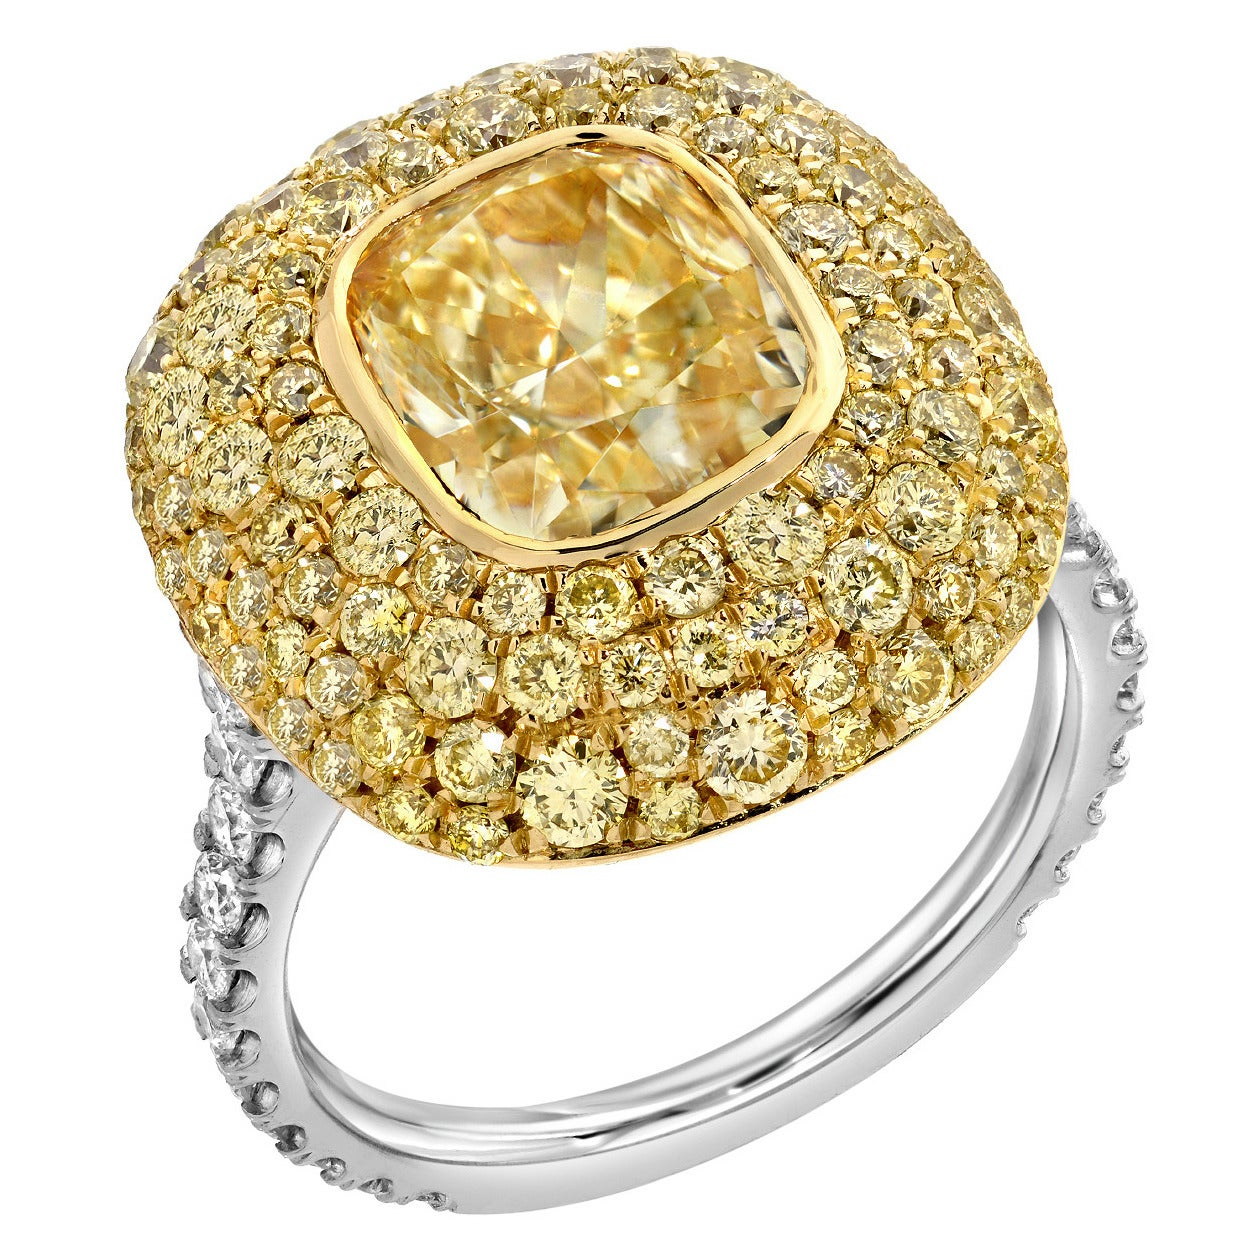 Tamir GIA Certified 3.01 Carat Fancy Light Yellow Diamond Gold Platinum Ring